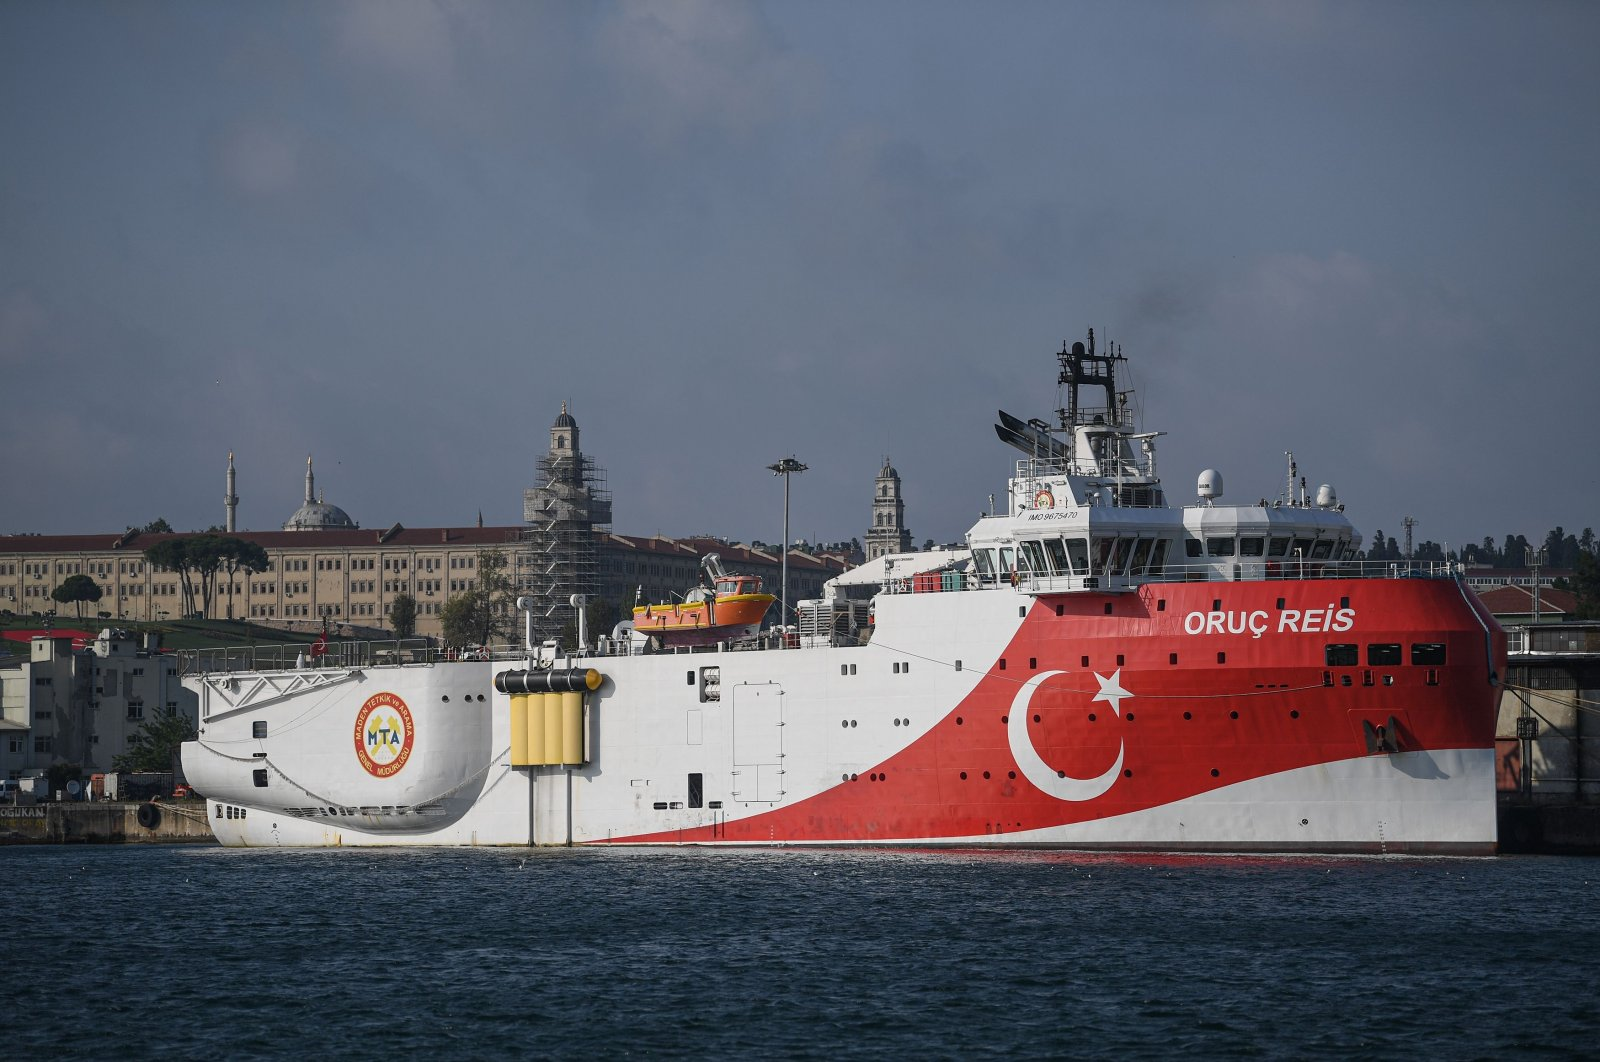 Turkish General Directorate of Mineral Research and Exploration's (MTA) Oruç Reis seismic research vessel docked at Haydarpaşa port on Aug. 23, 2019. (AFP File Photo)